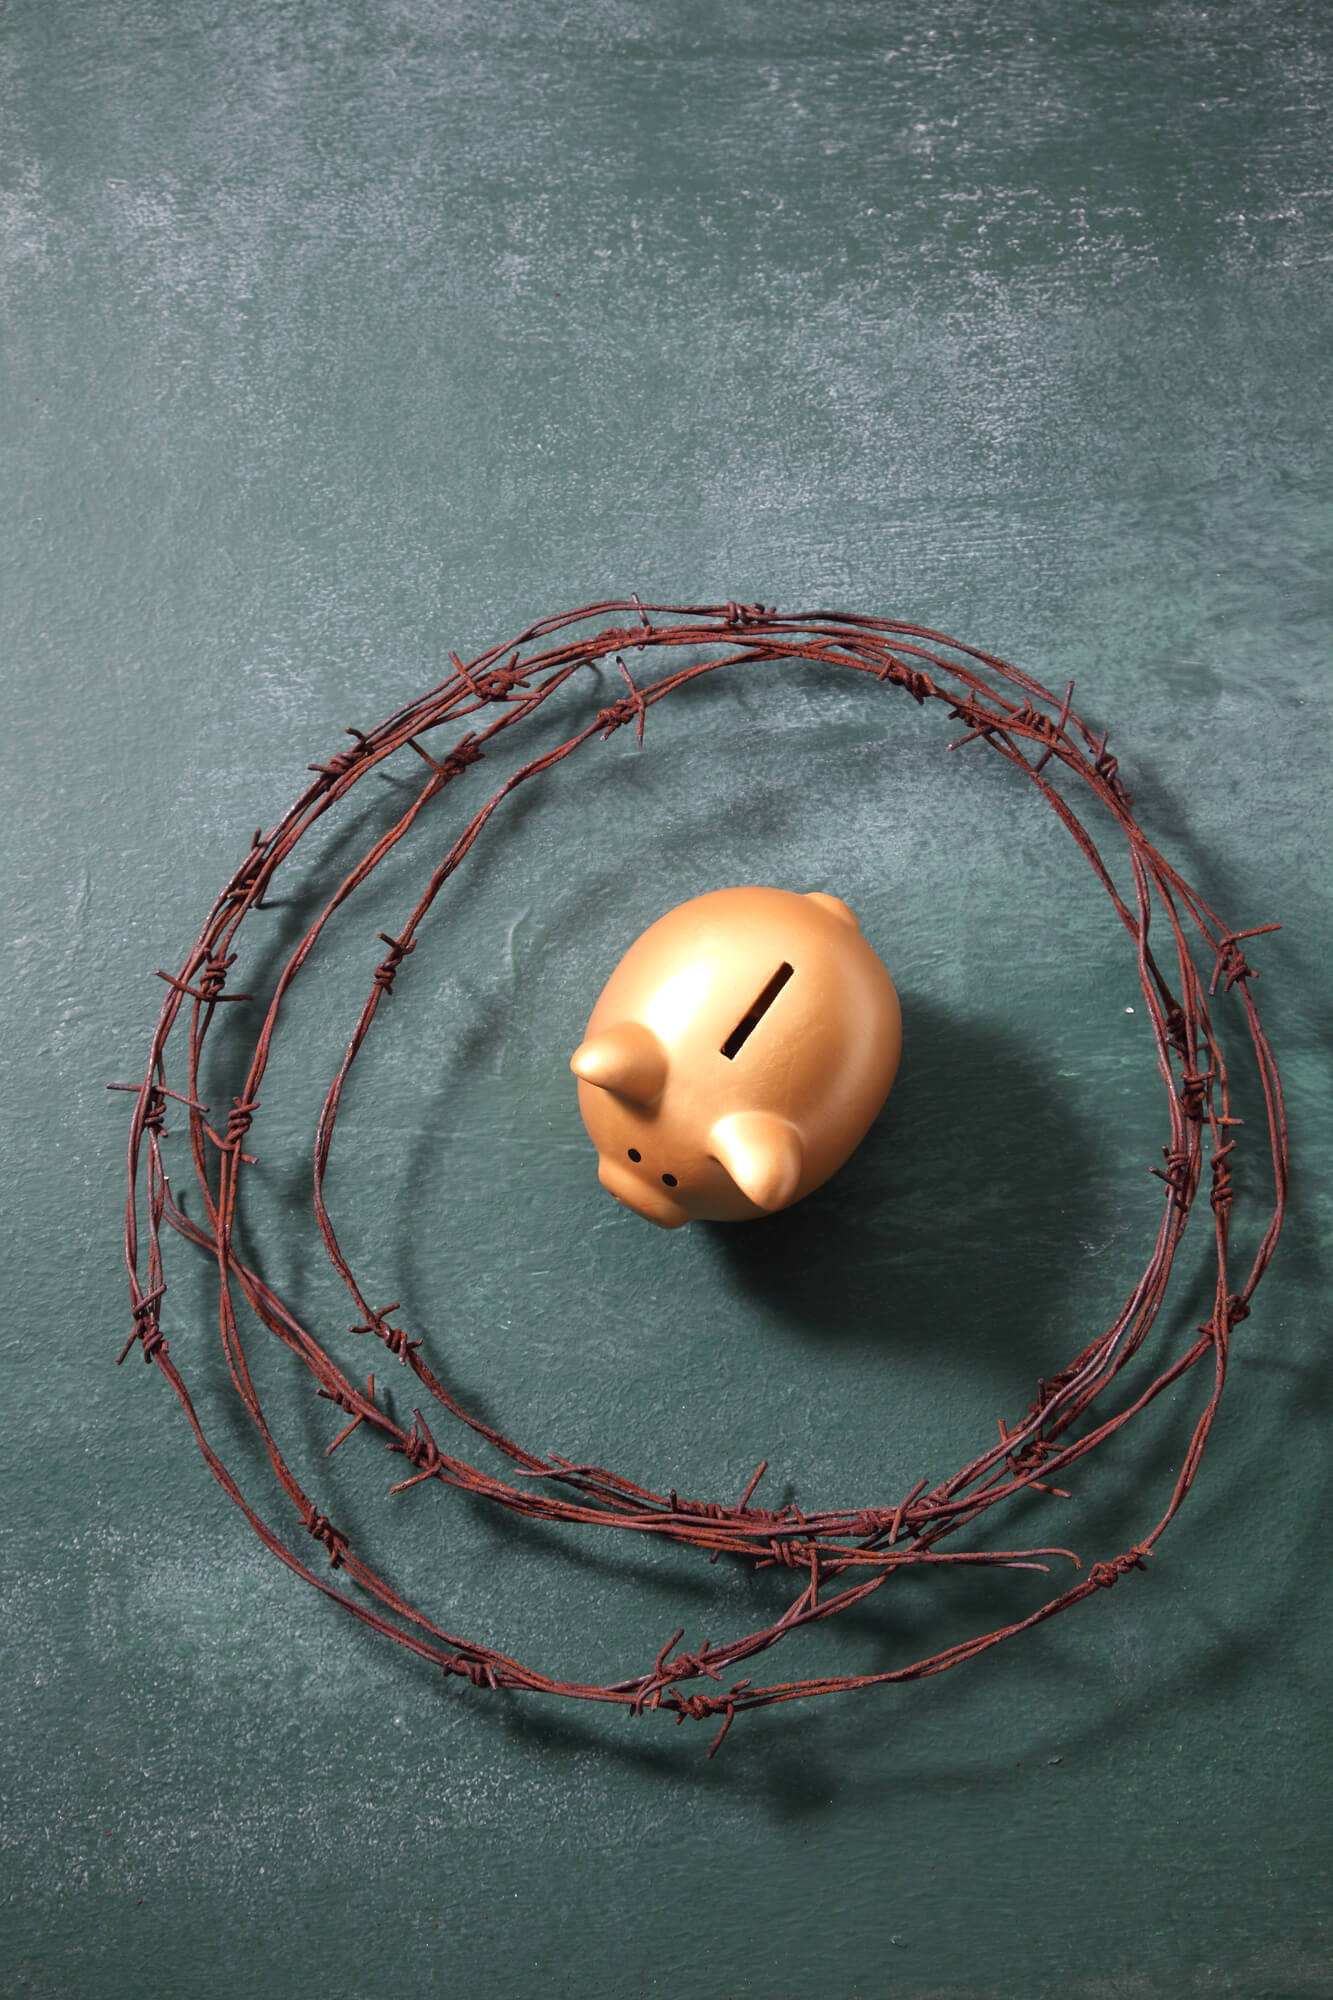 piggy bank surrounded by barbed wire